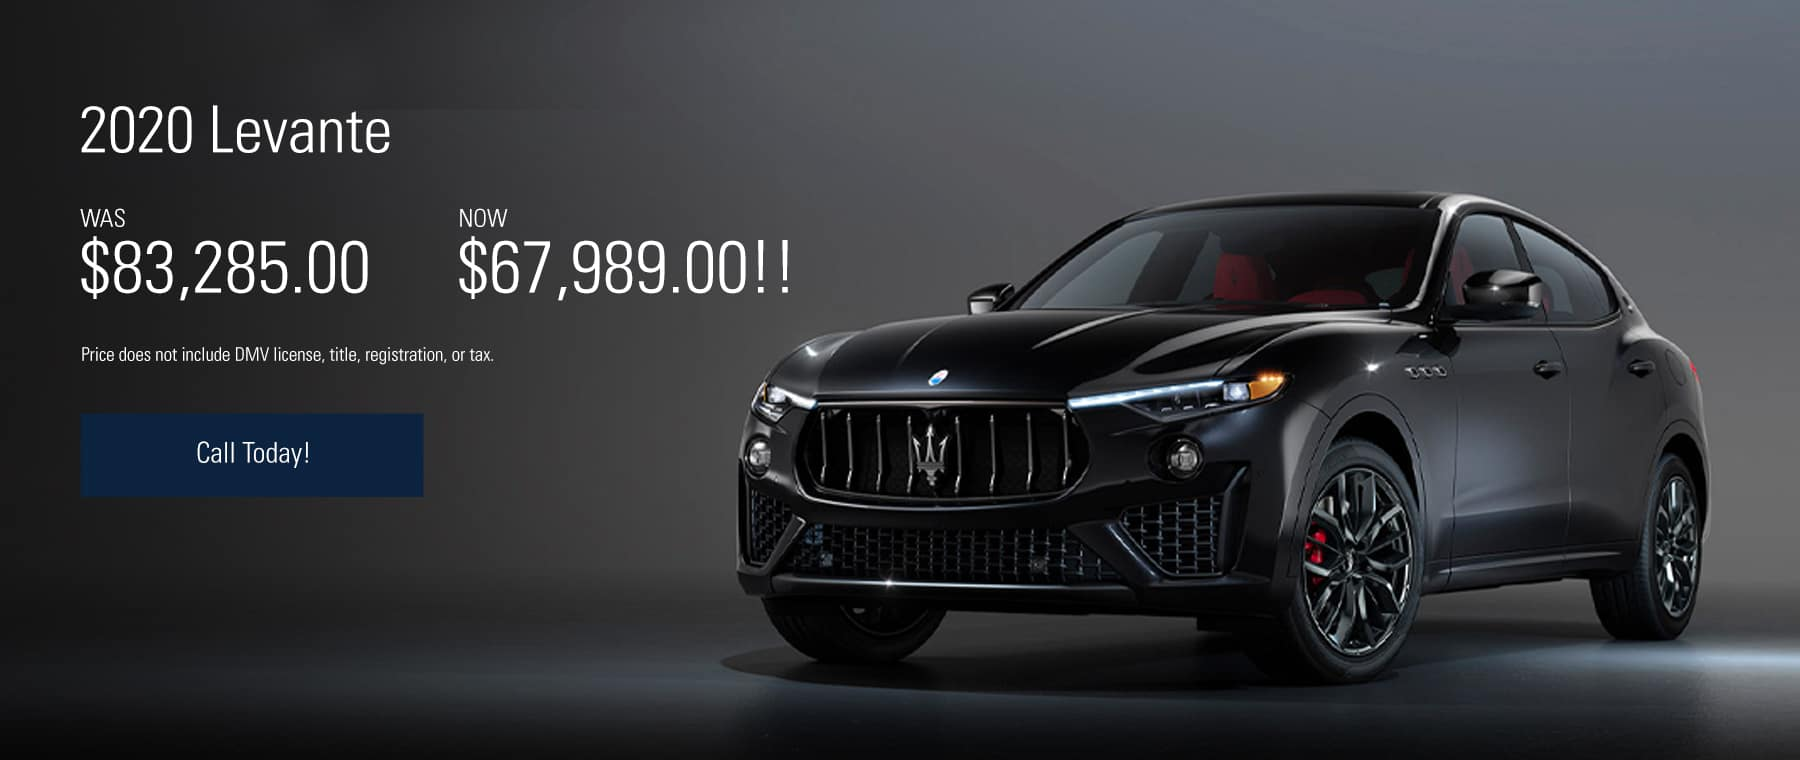 2020 Levante Offer, WAS $83,285.00, NOW $67,989.00!!